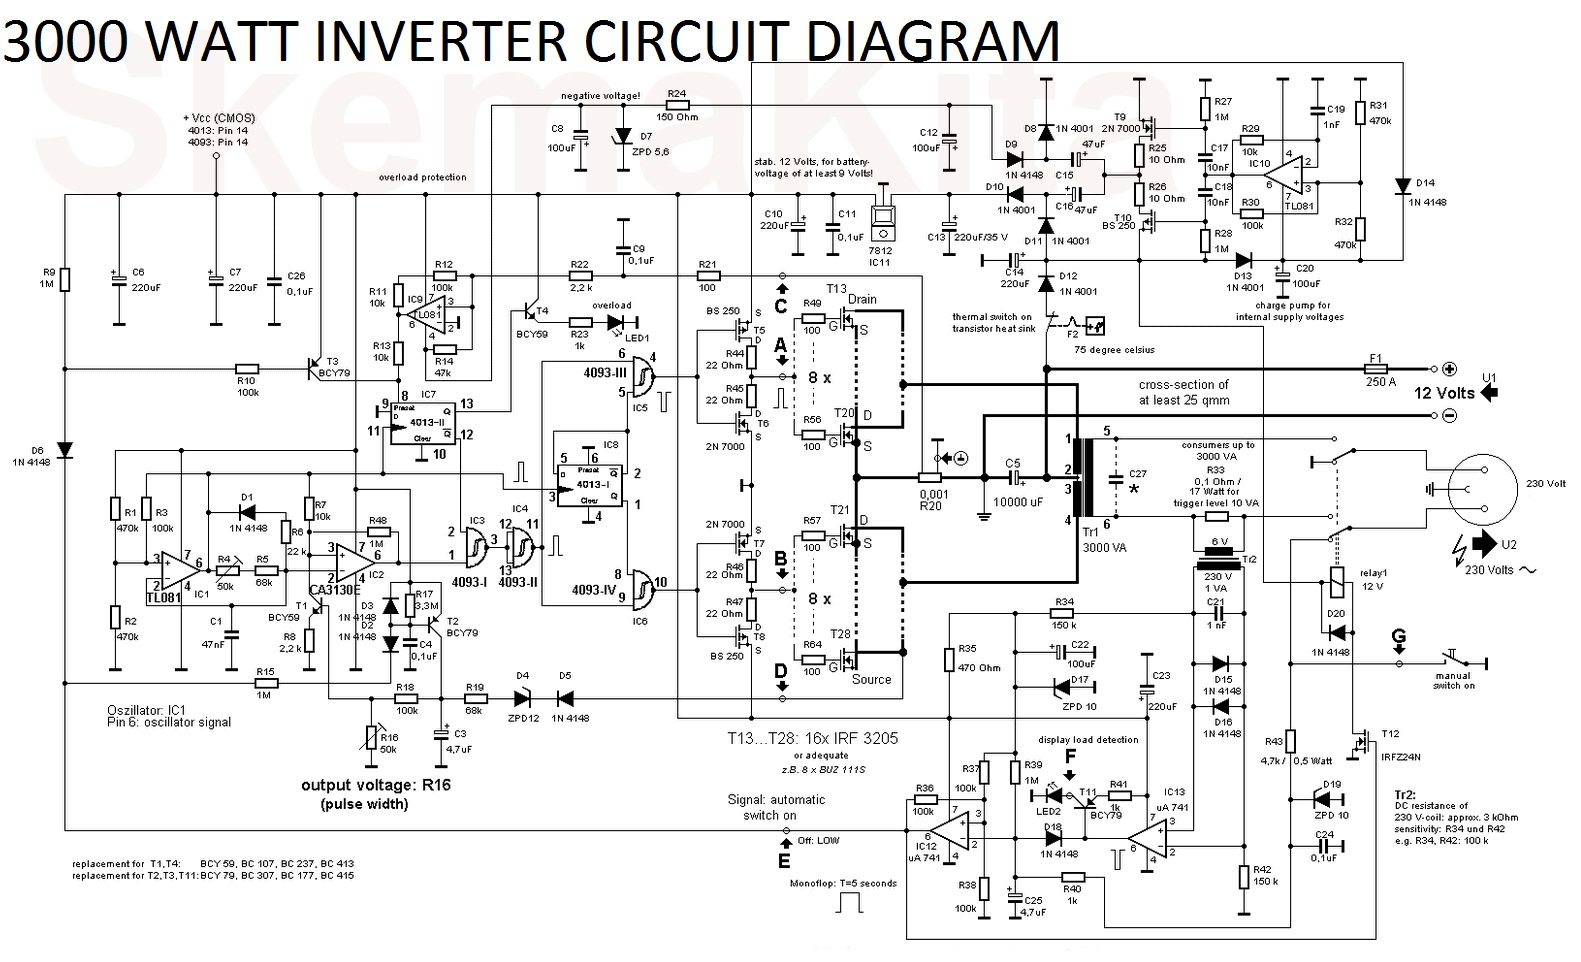 Inverter circuit diagram wiring harness 3000 watt inverter circuit diagram electronic circuit parallel circuit diagram cheapraybanclubmaster Gallery